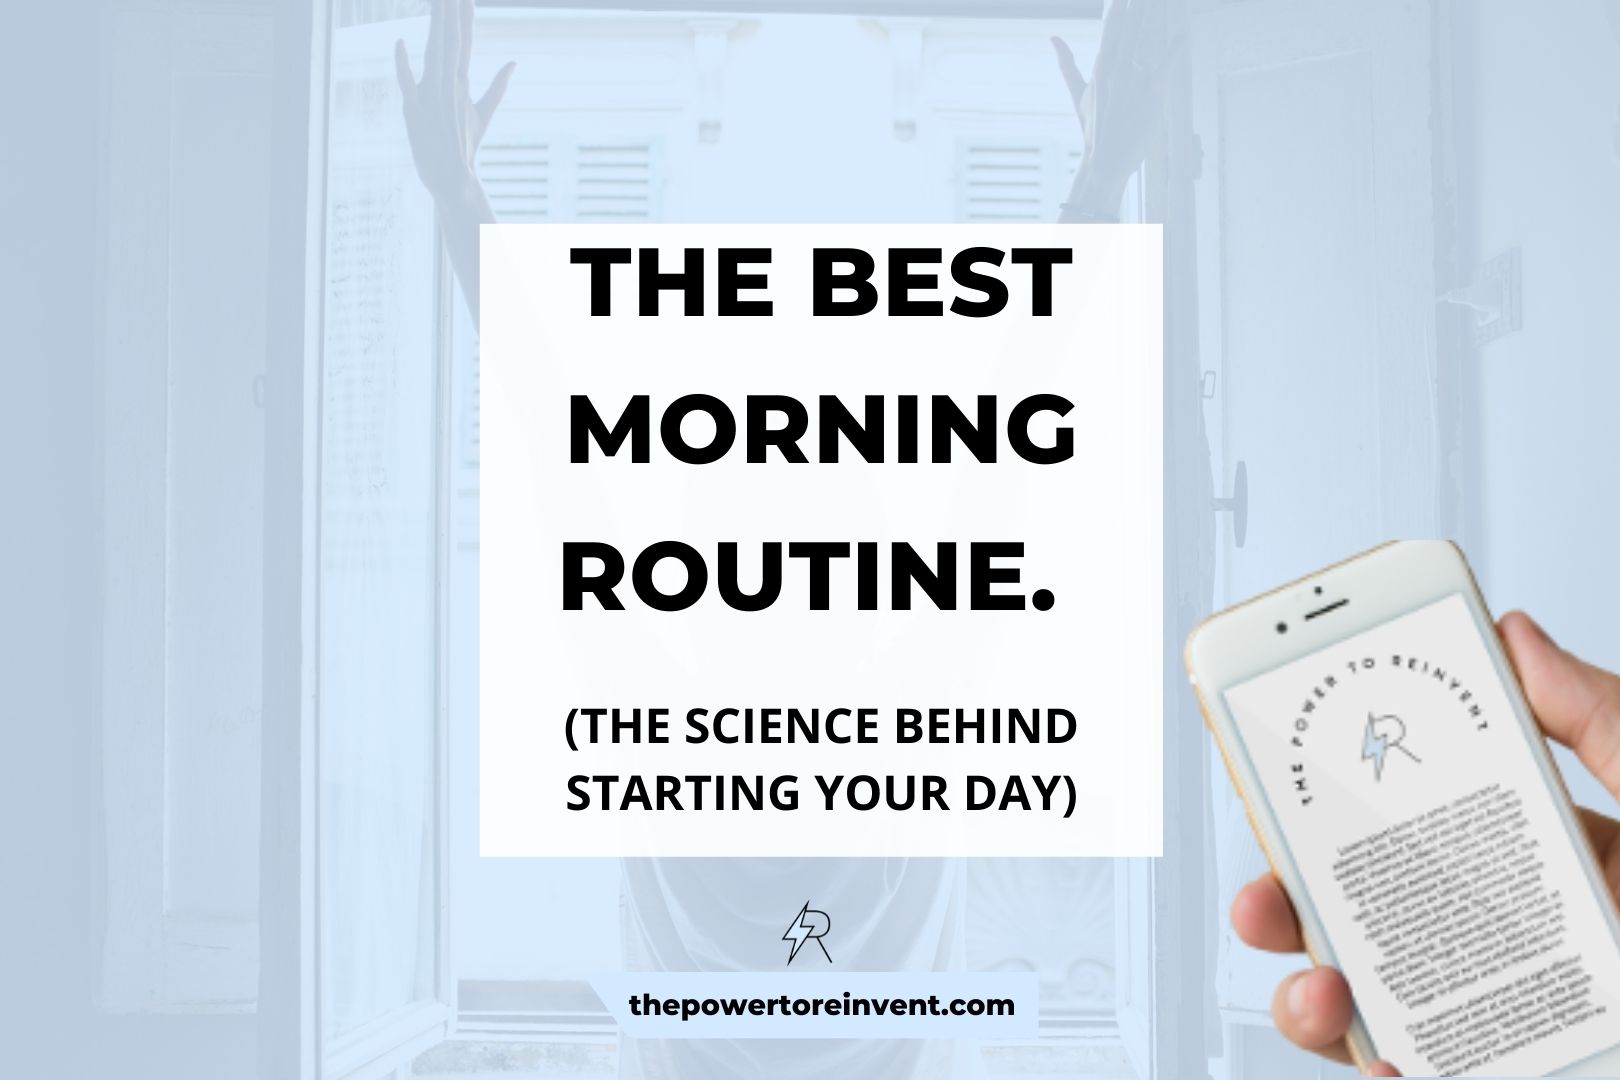 Create the best morning routine